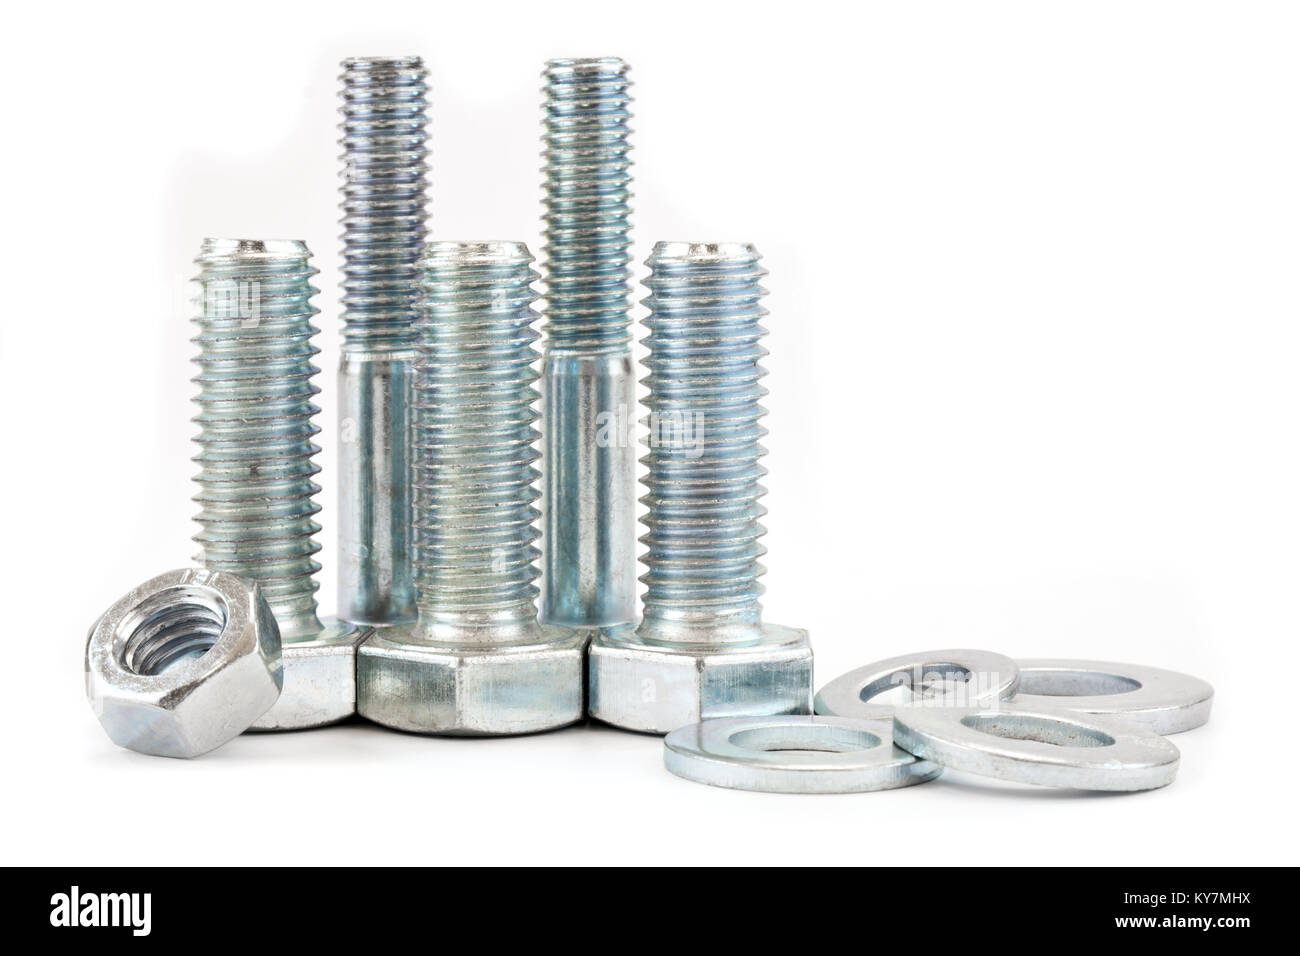 Many different bolts isolated on white background - Stock Image